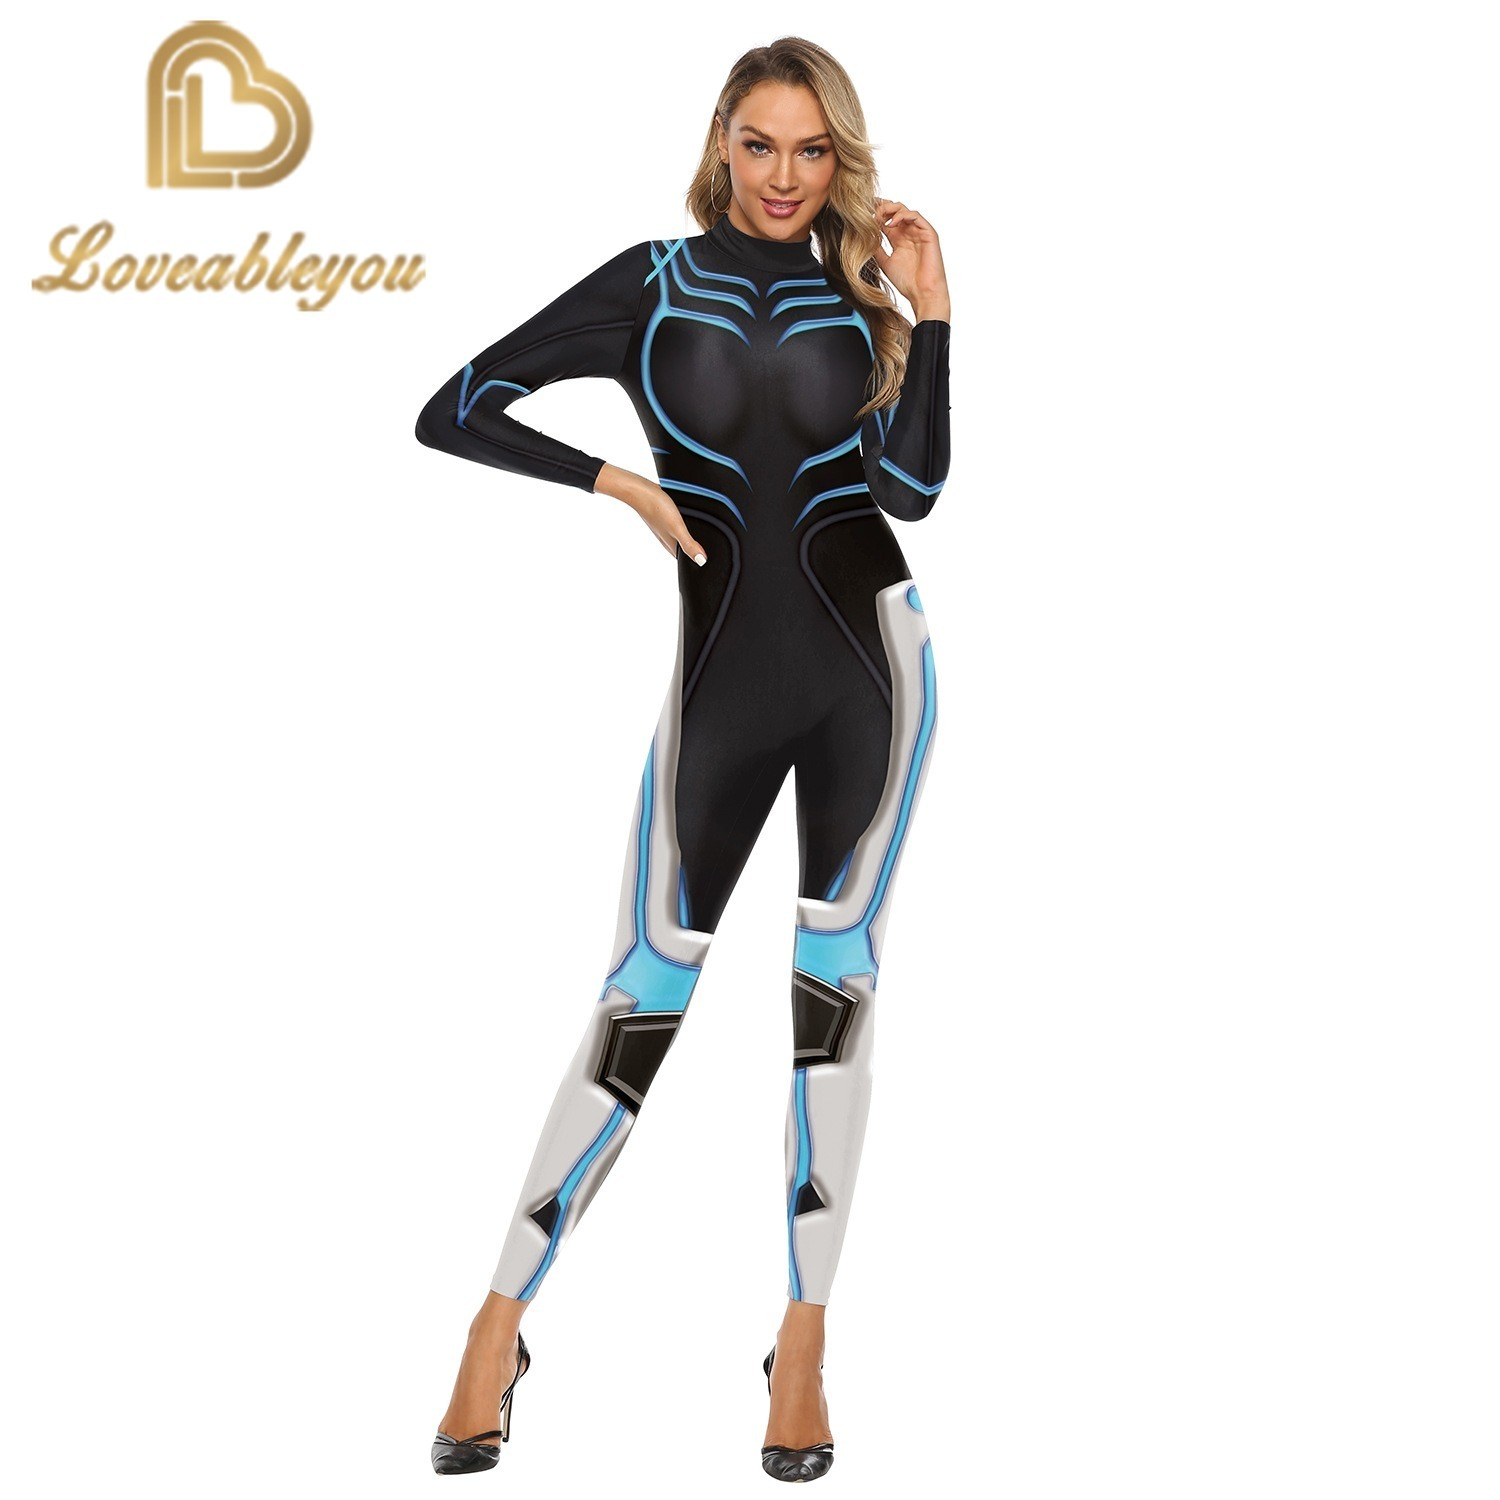 Hot Sale 2019 New Fashion Gaming Cosplay Costume 3D Printed Bodysuit for Women Party Cospaly Bodysuit Sexy Jumpsuits 1